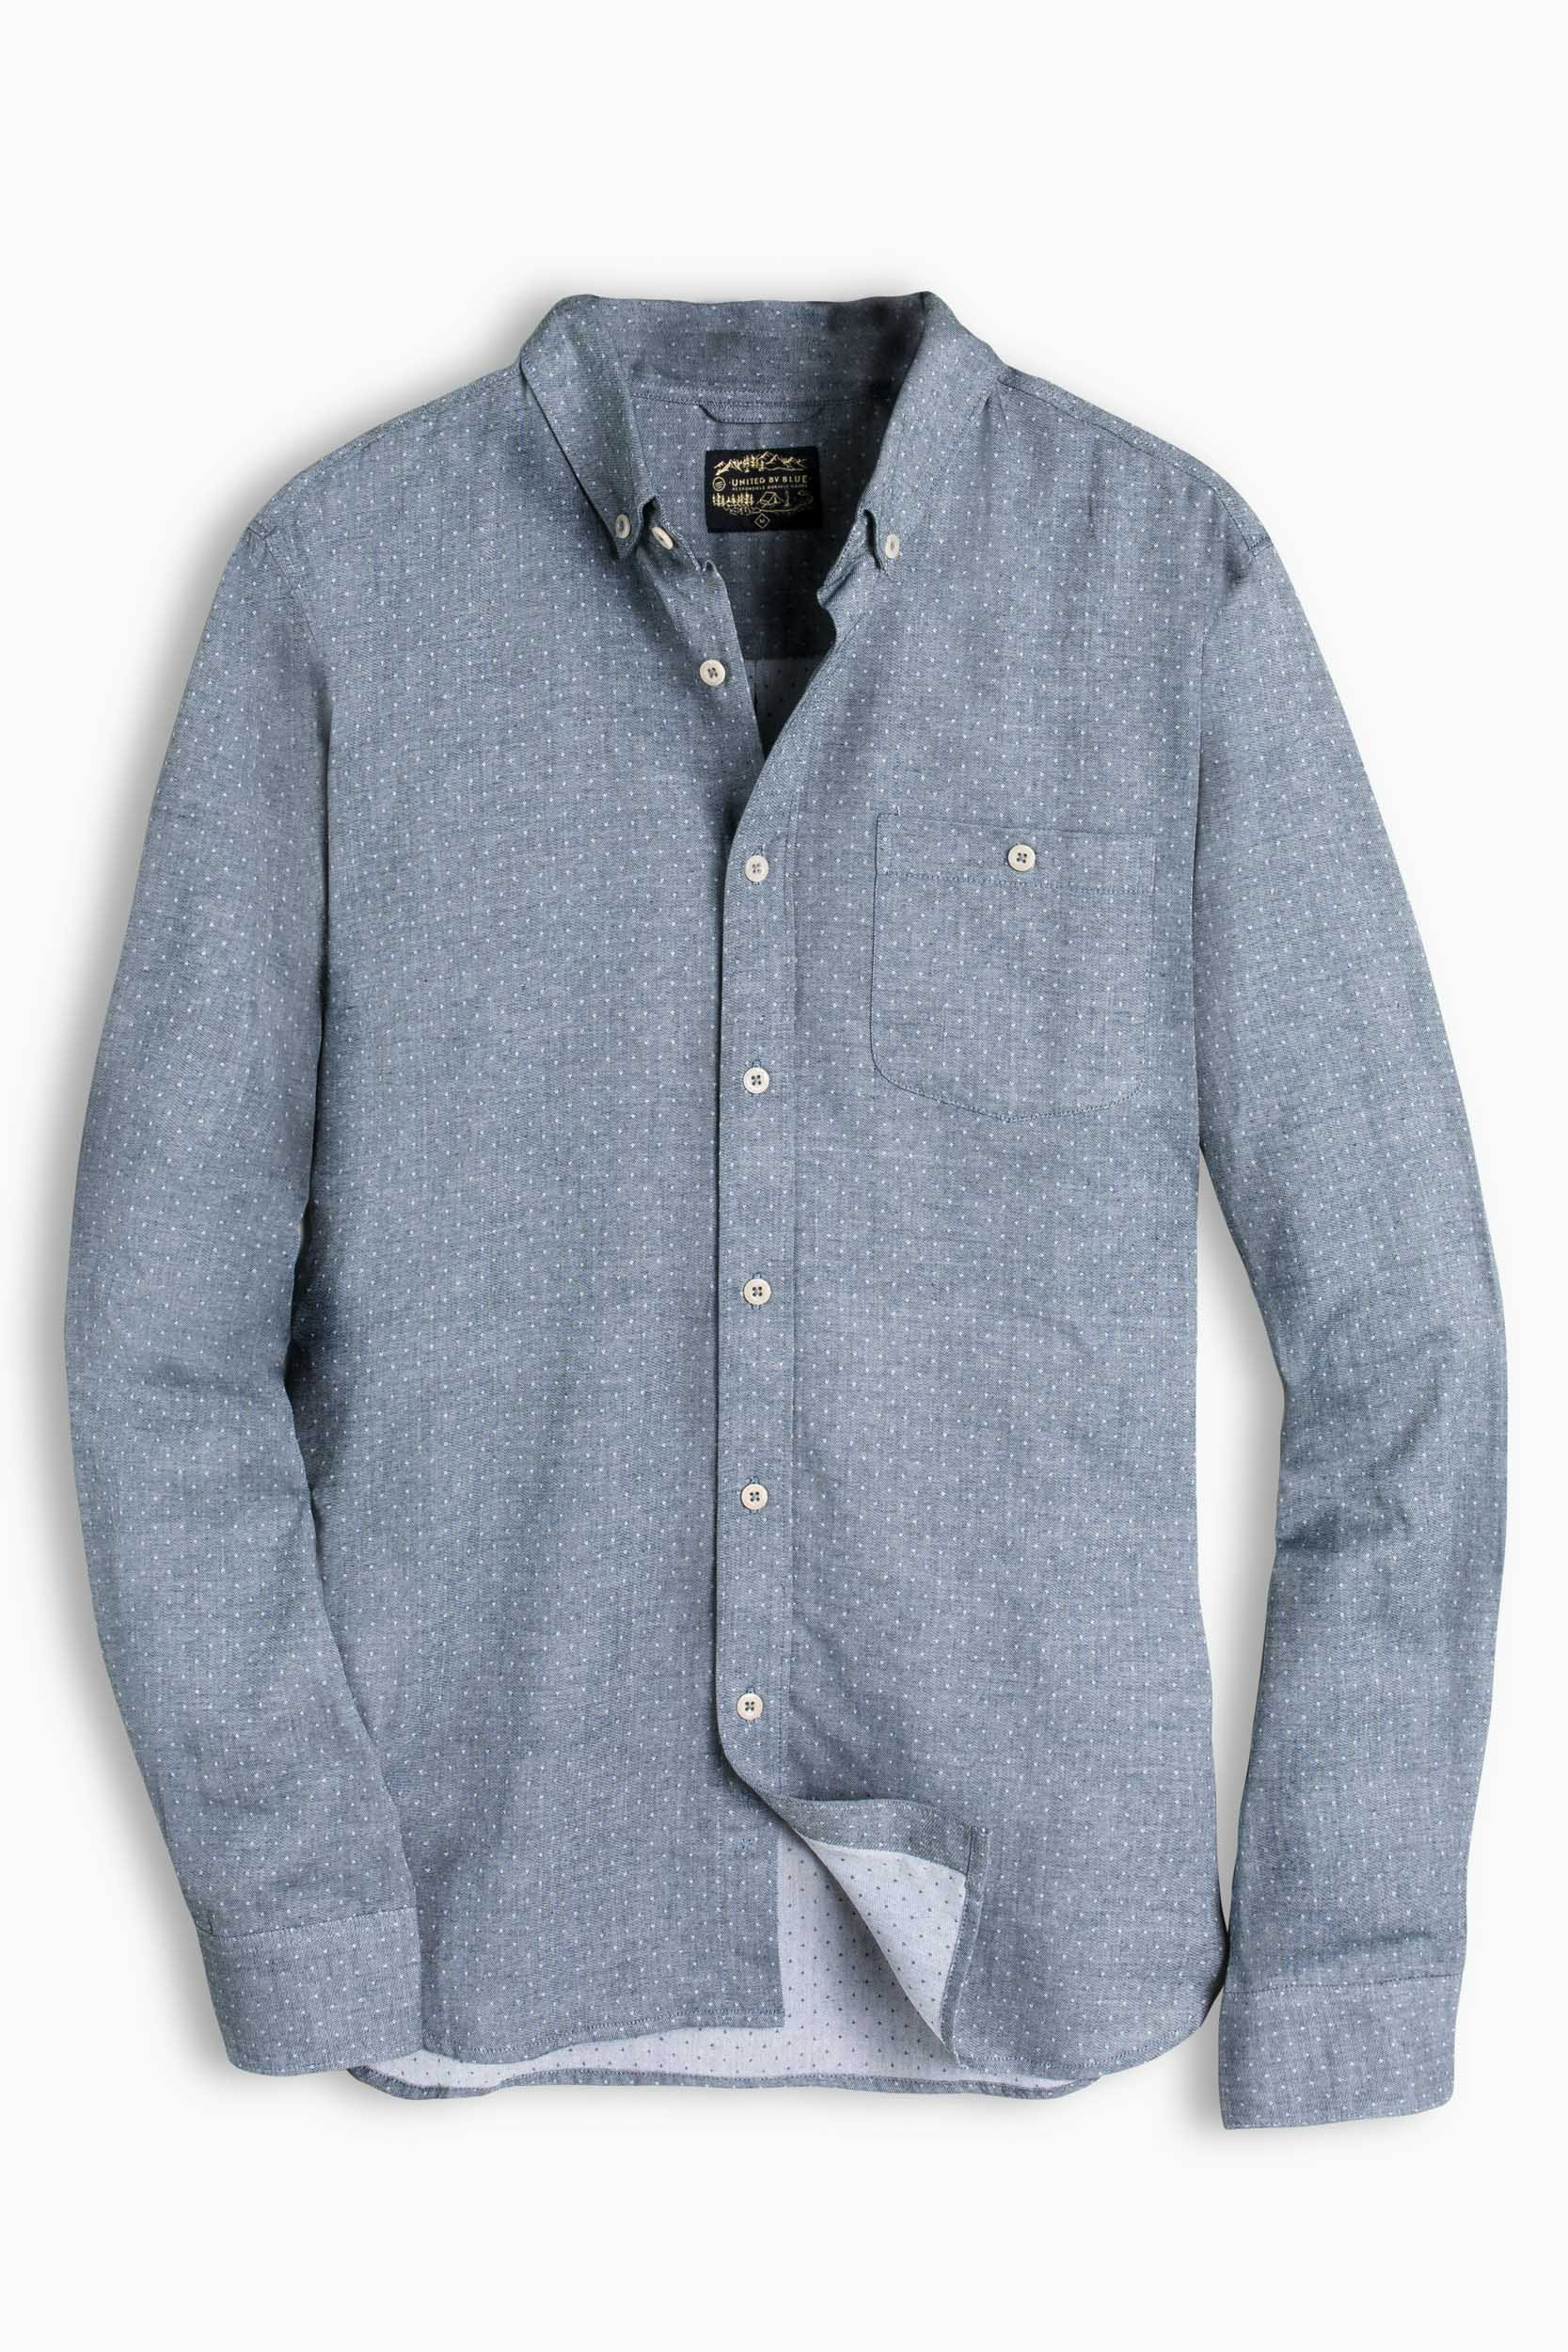 United By Blue Stillwell Dotted Twill Button Down